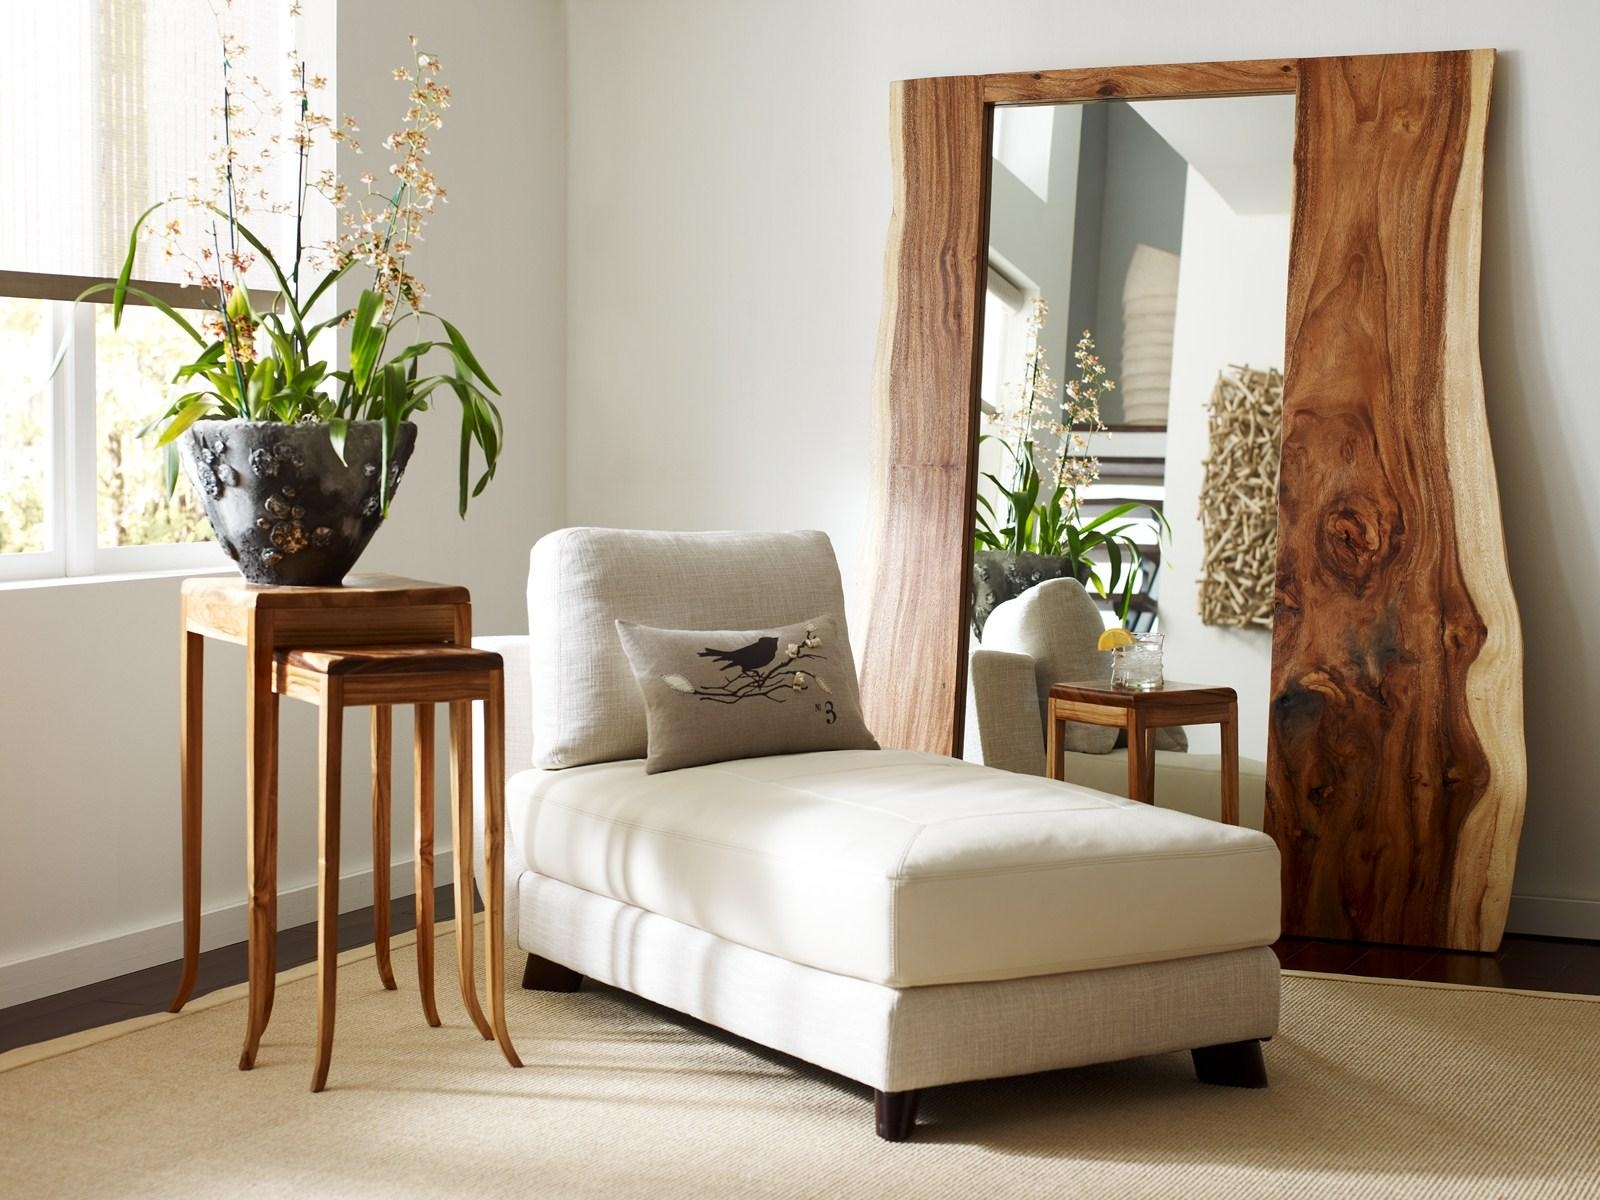 High Stand Mirror With Natural Brown Wooden Frame Placed On The Throughout Natural Wood Framed Mirrors (View 17 of 20)